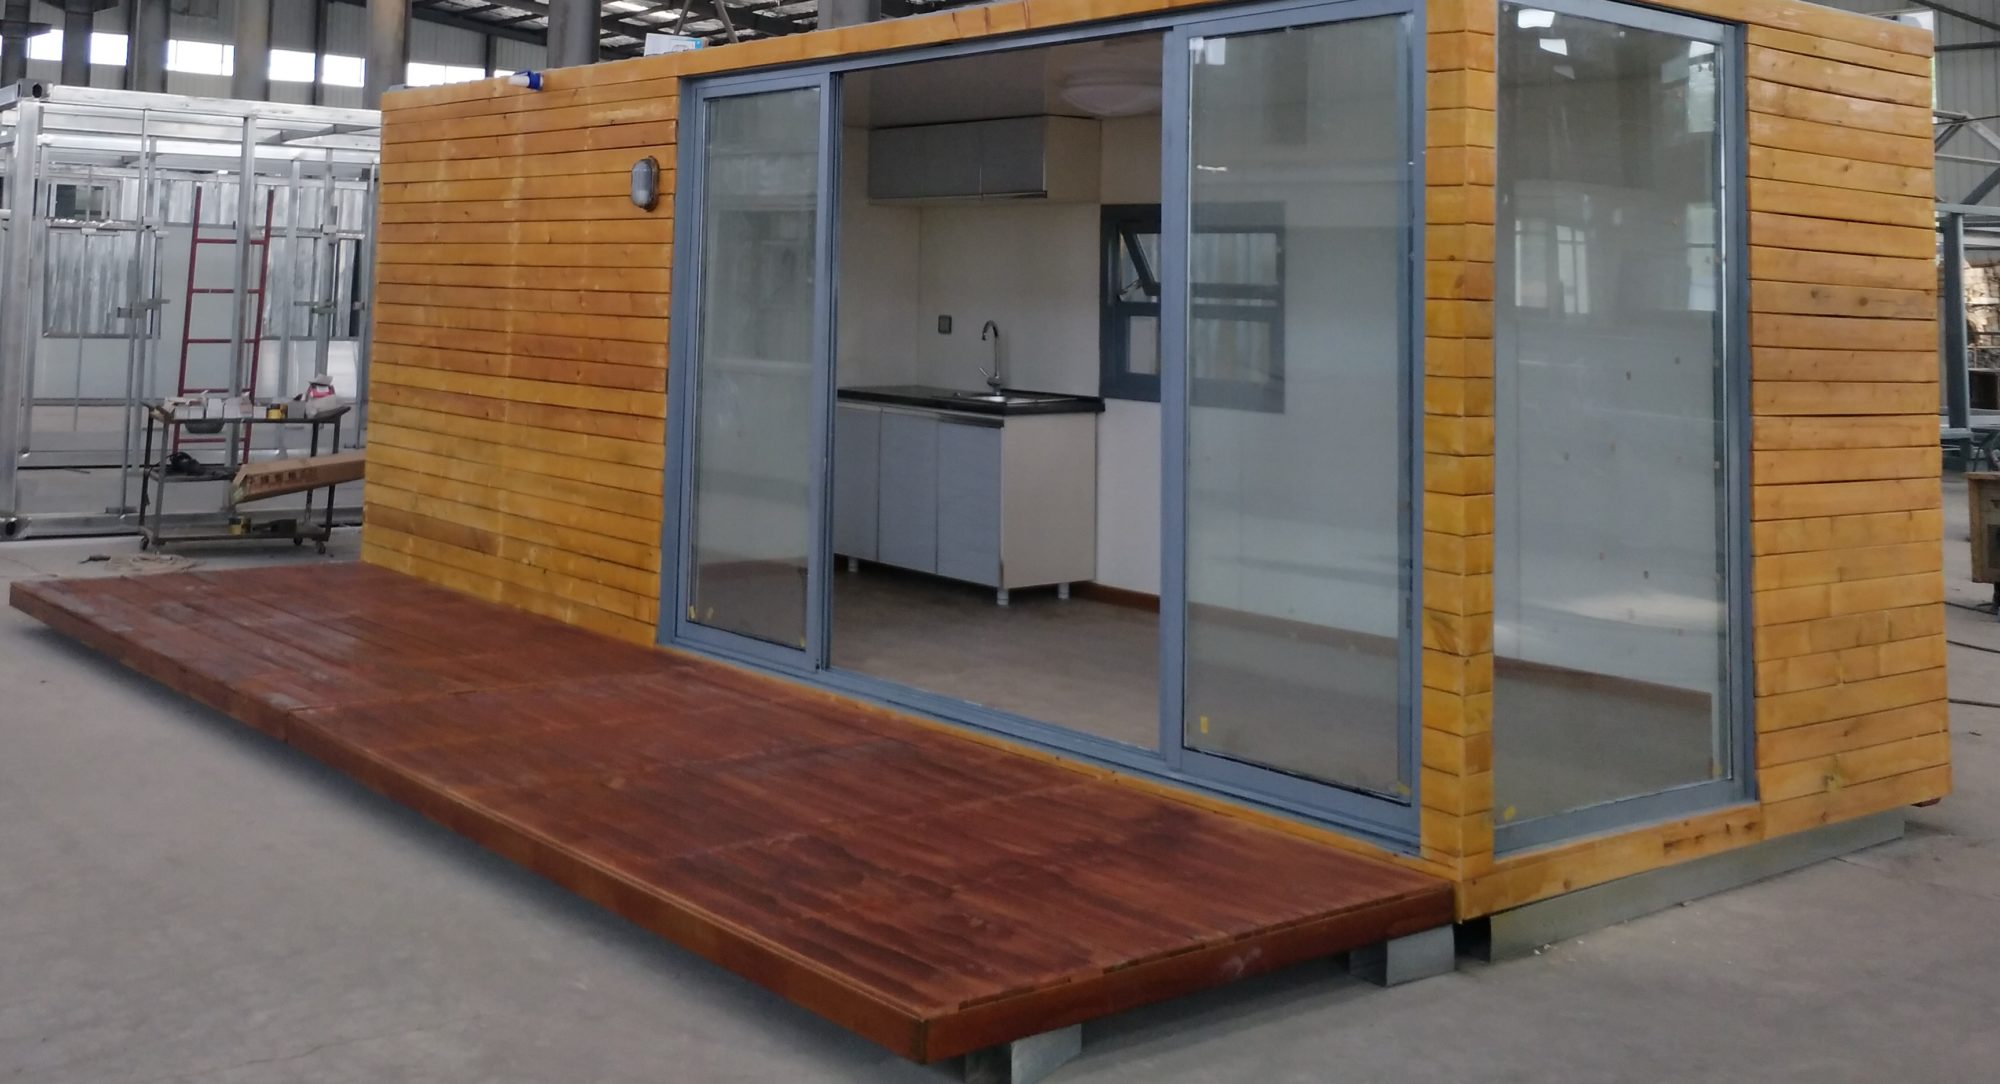 Modular Homes by Asymptech